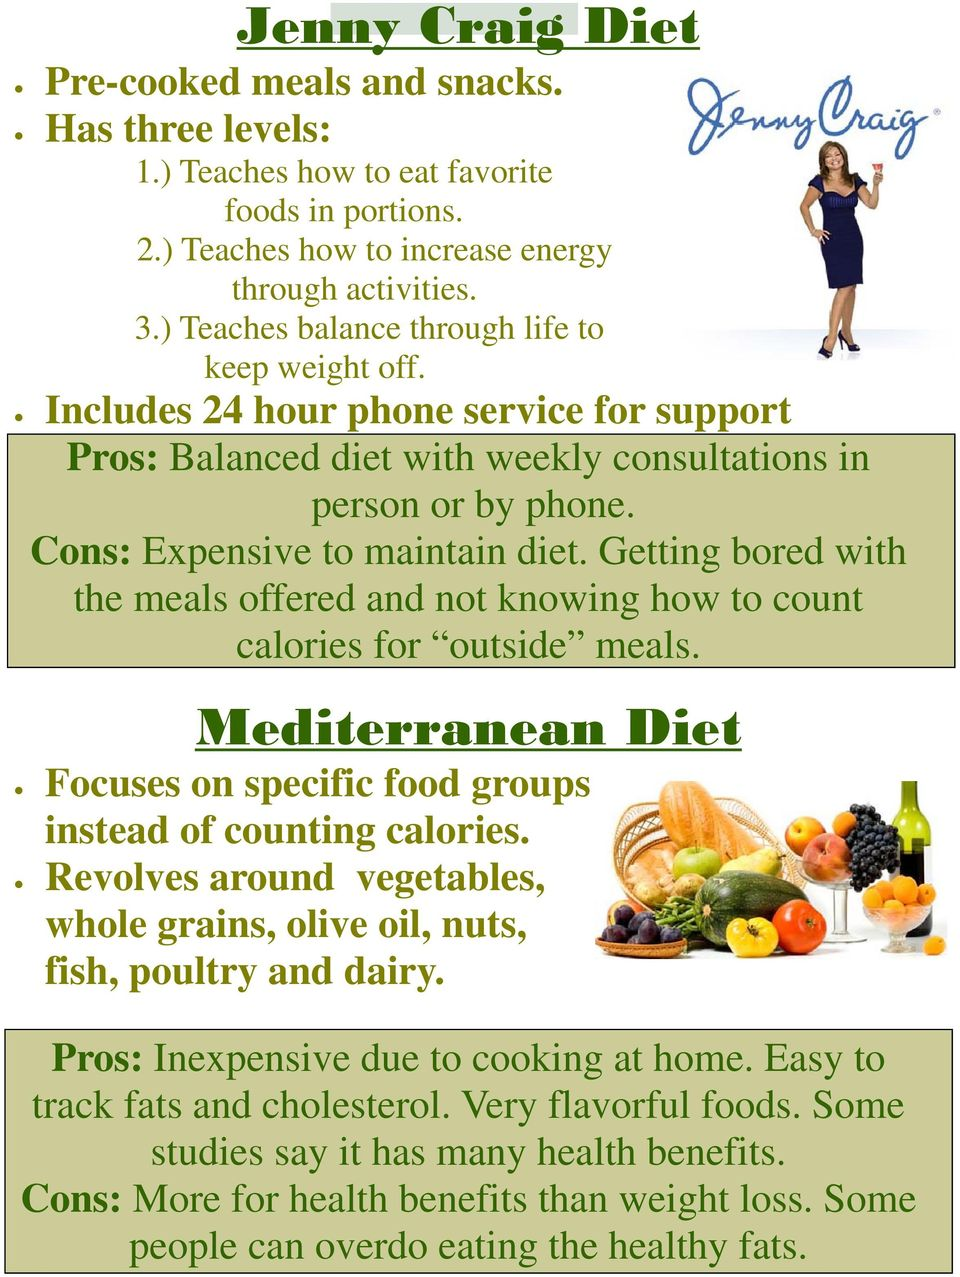 glycemic index diet pros and cons